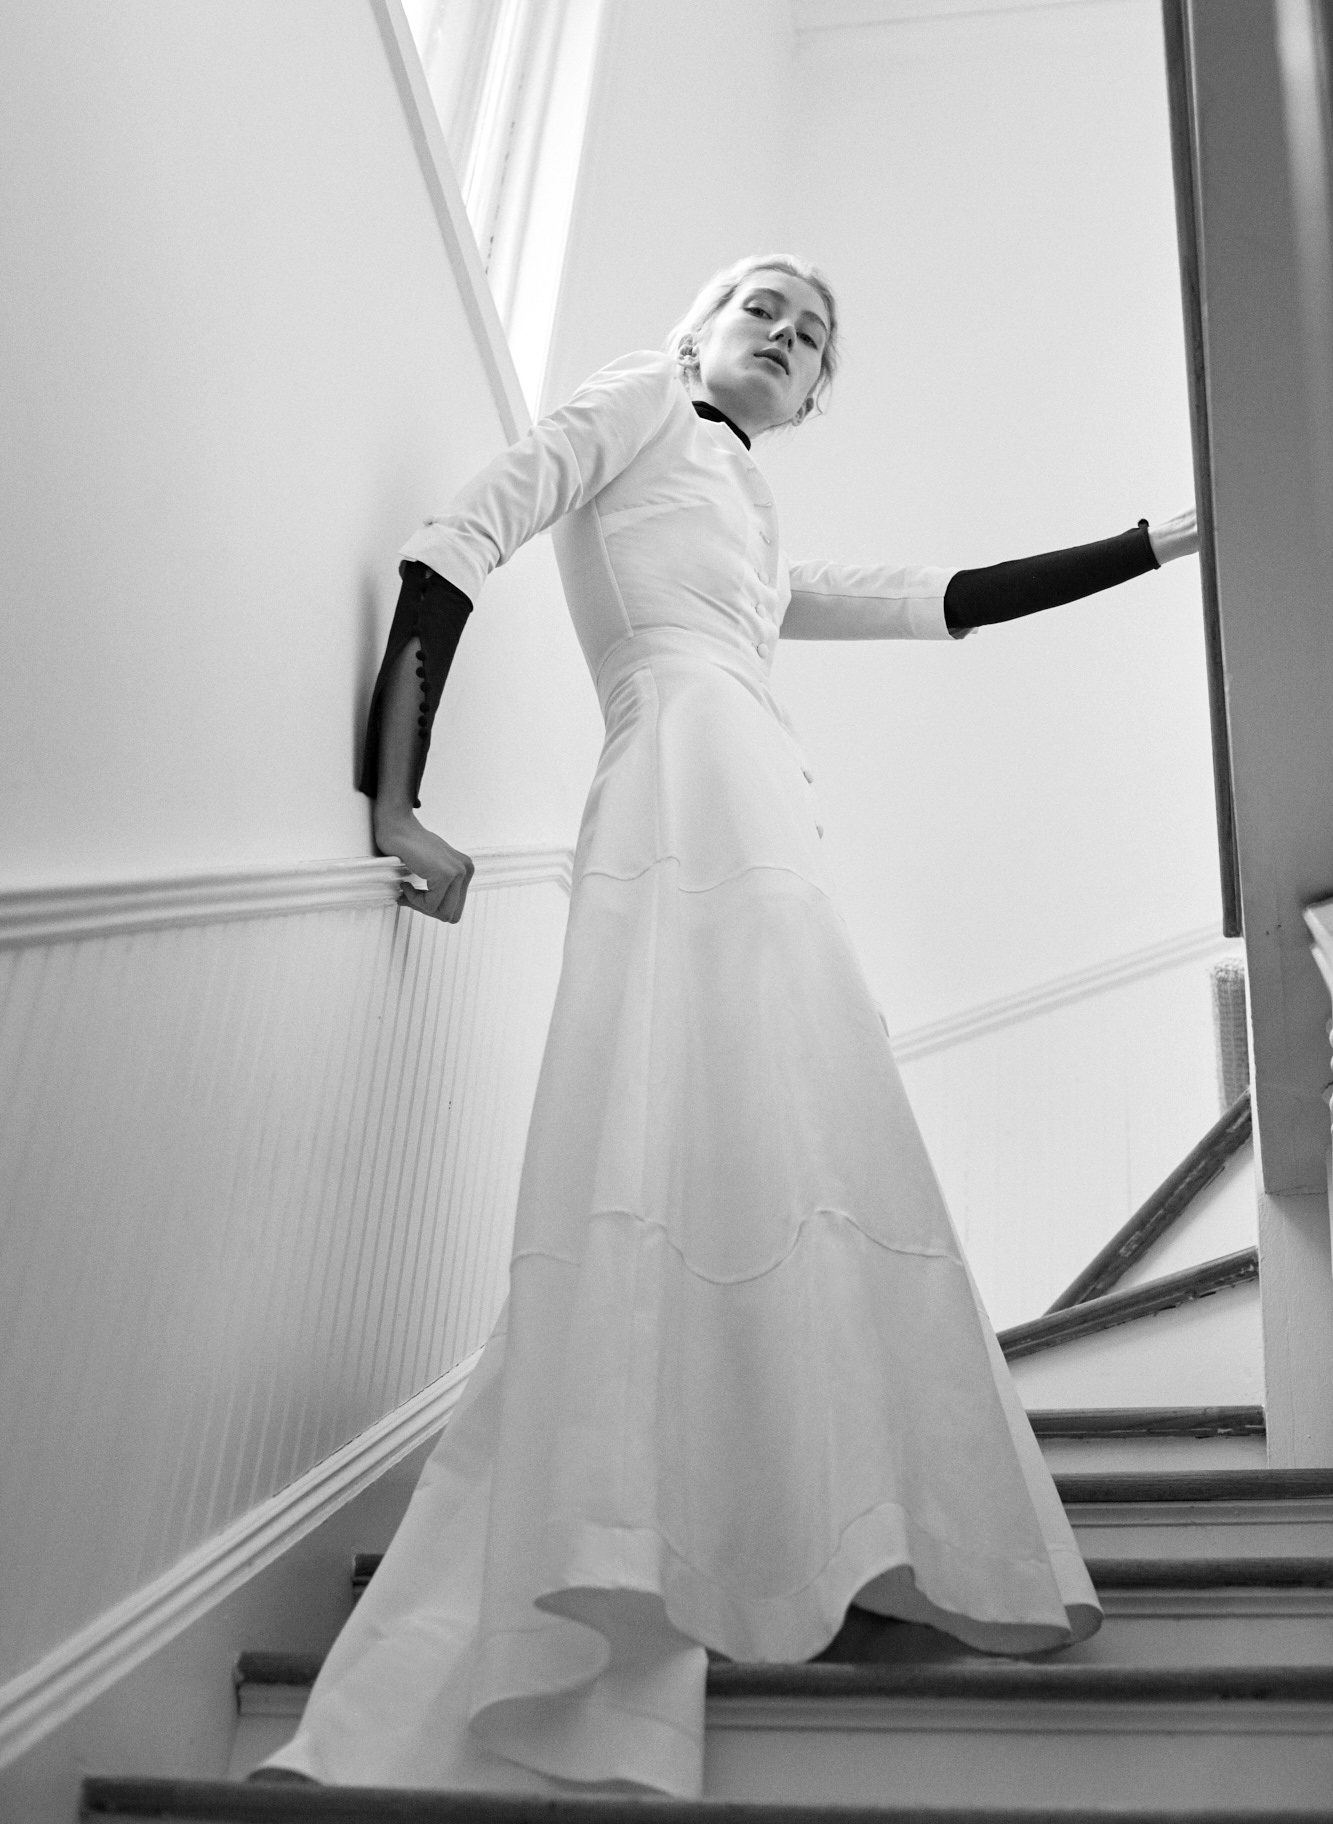 Lein wedding dress spring 2019 long sleeve a-line with buttons down middle